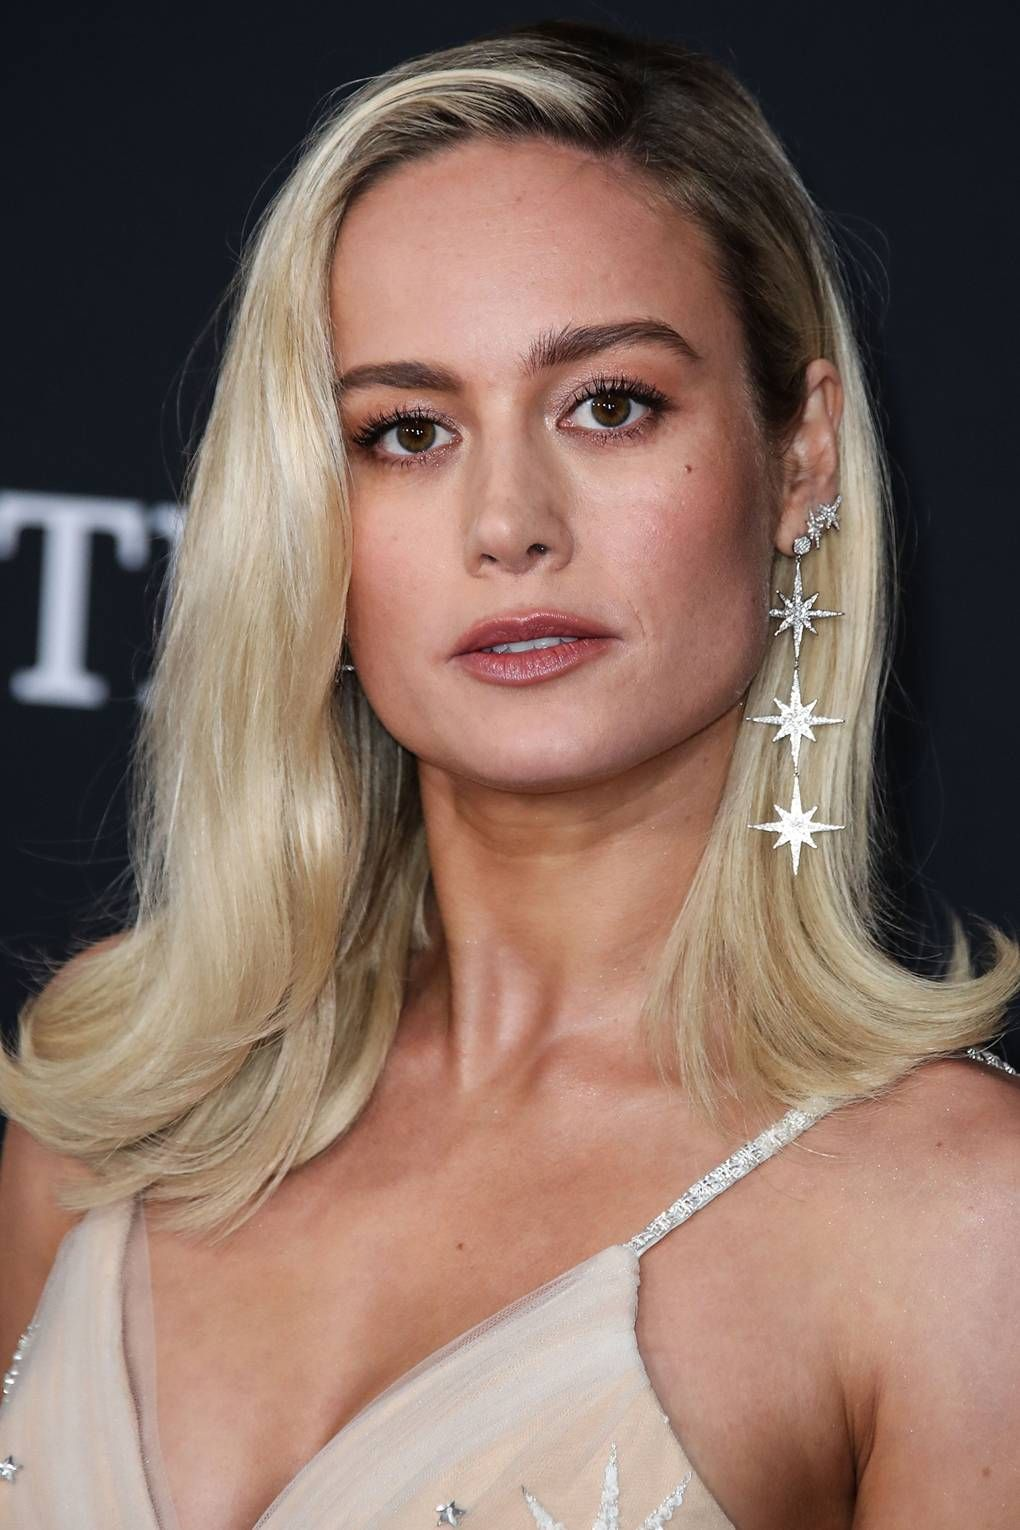 All The Short Hairstyle Inspo You Need Ahead Of Your First Trip Back To The Salon Long Bob Blonde Short Hair Styles Brie Larson